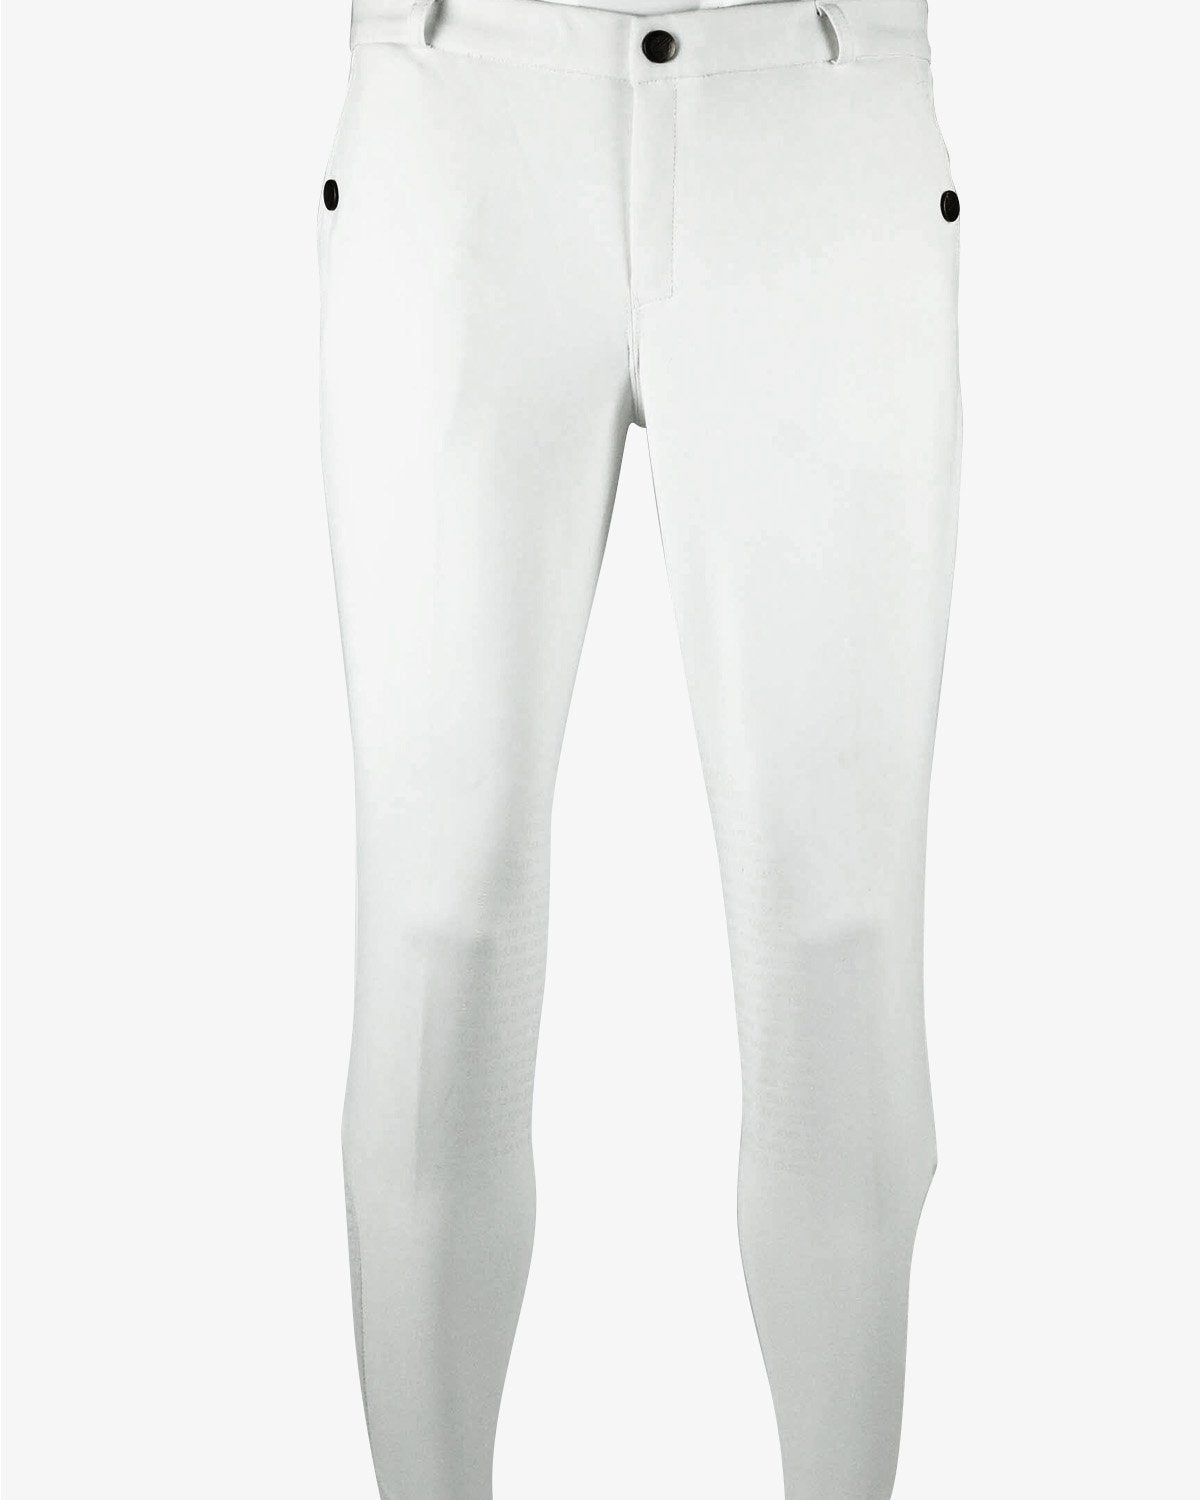 Silicon Riding Breeches - Mens